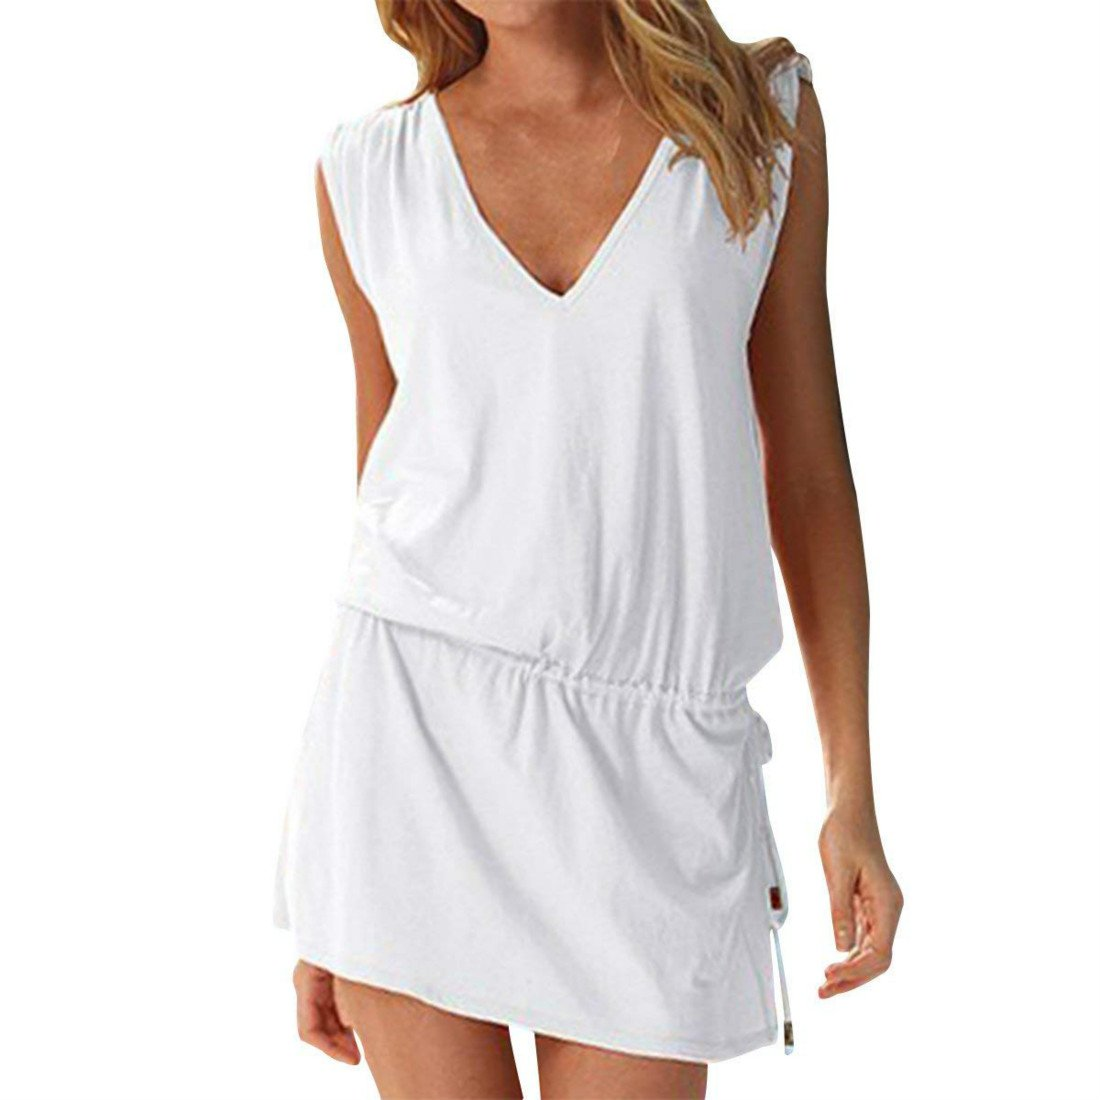 HALT Women's Beach Swimsuit Cover up Deep V-Neck Short Mini Dress Open-Back Beach Skirt (White)